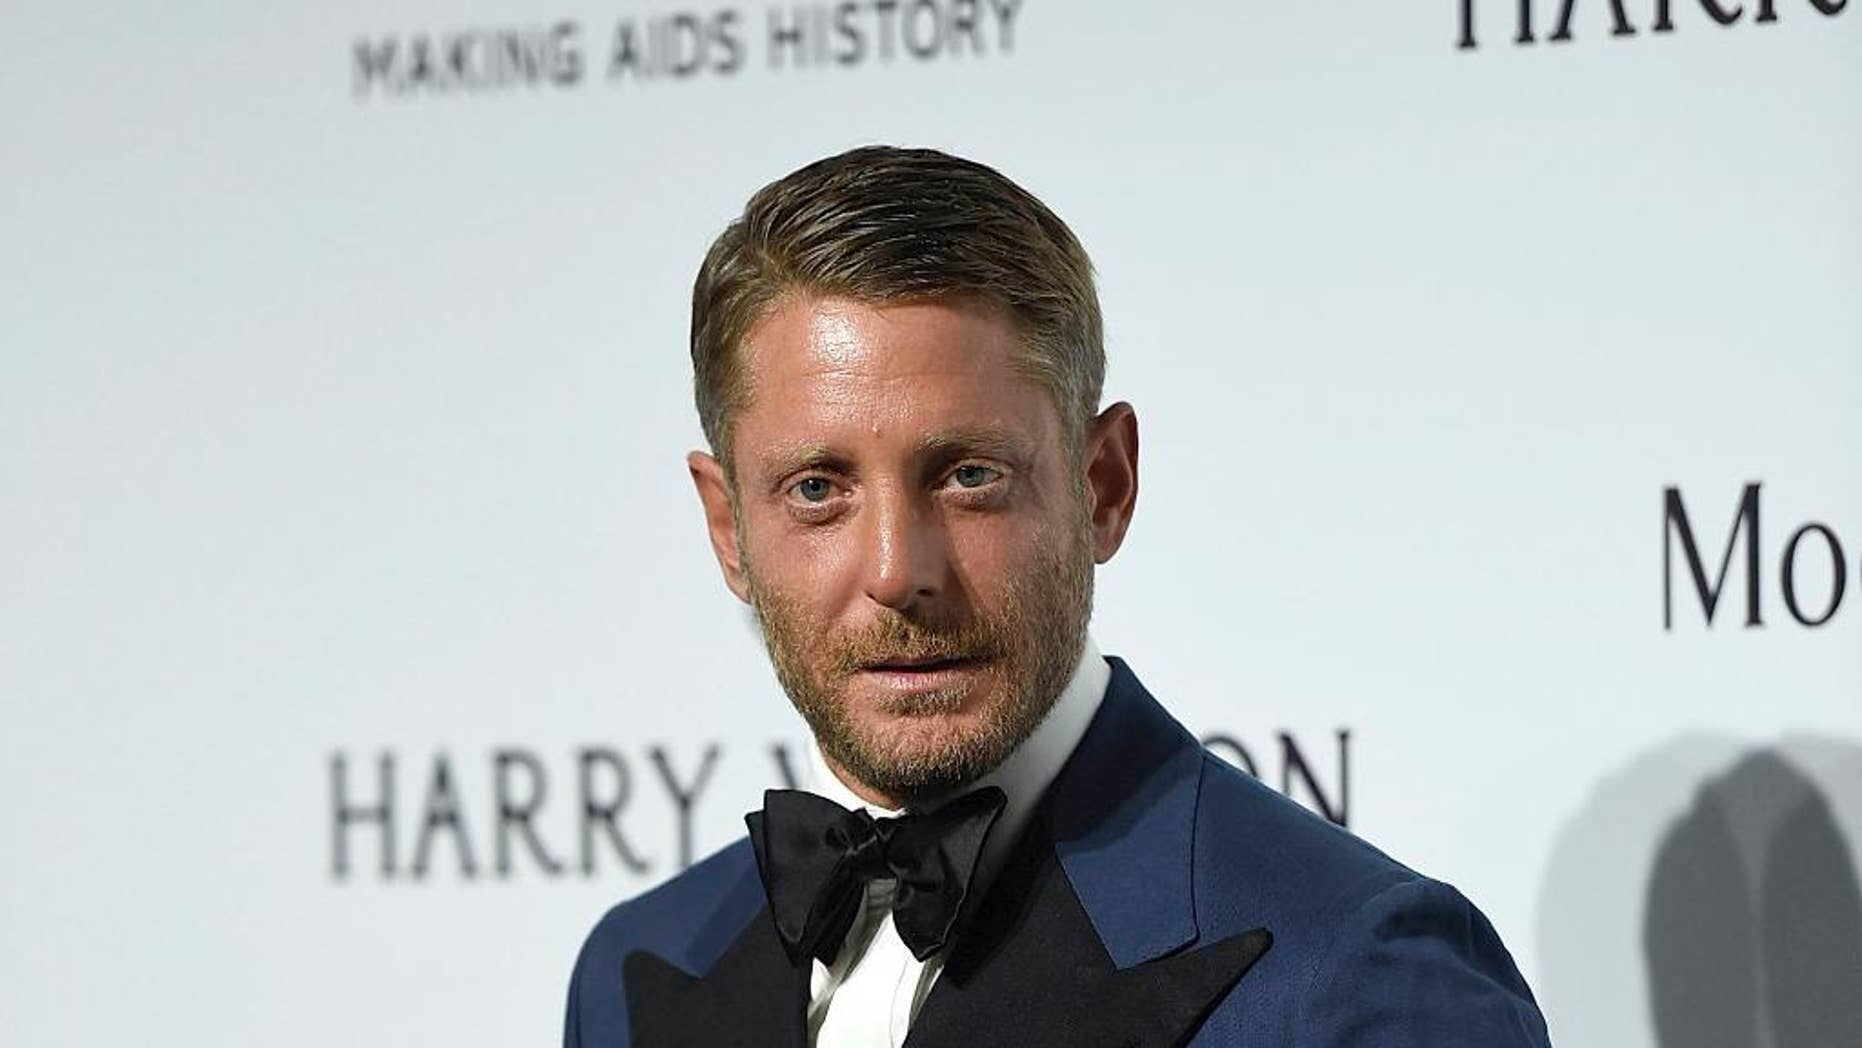 FILE - In this Sept. 26, 2015 file photo, Lapo Elkann arrives for an amfAR charity dinner in Milan, Italy. A criminal charge by the Manhattan district attorney has been dropped against the playboy grandson of the Italian founder of Fiat Automobiles who had been accused of filing a false report when he claimed he was being held against his will in New York City. The 39-year-old was arrested outside a public housing project in December 2016 after his family contacted police, saying he needed $10,000 to guarantee his safety. But authorities say he made up the story after he ran out of money following a two-day binge with an escort. (AP Photo/Giuseppe Aresu, File)